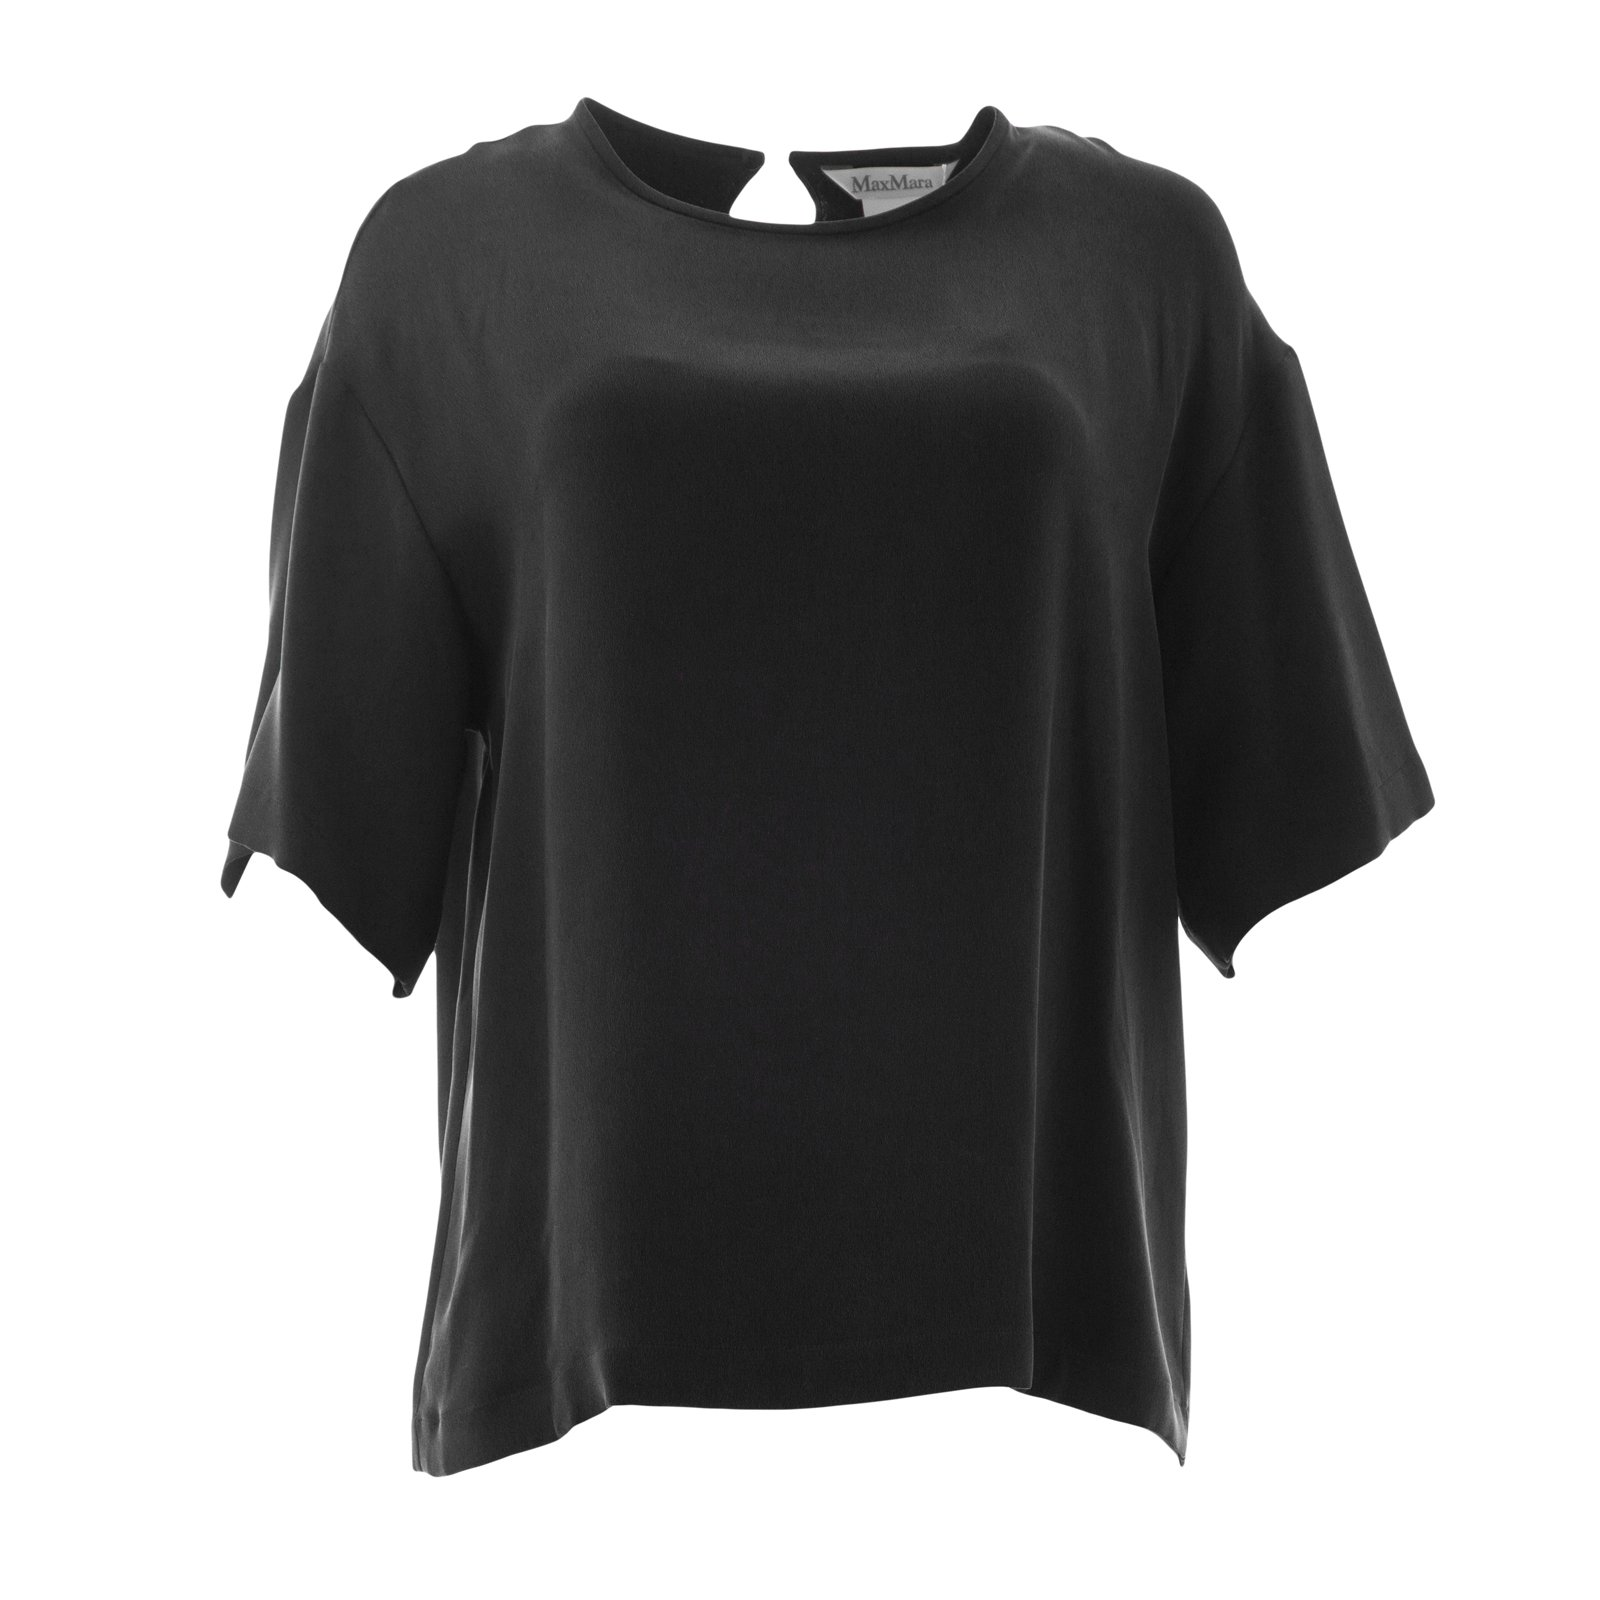 Max Mara Women's Finezza Oversized Silk Top Sz 10 Black